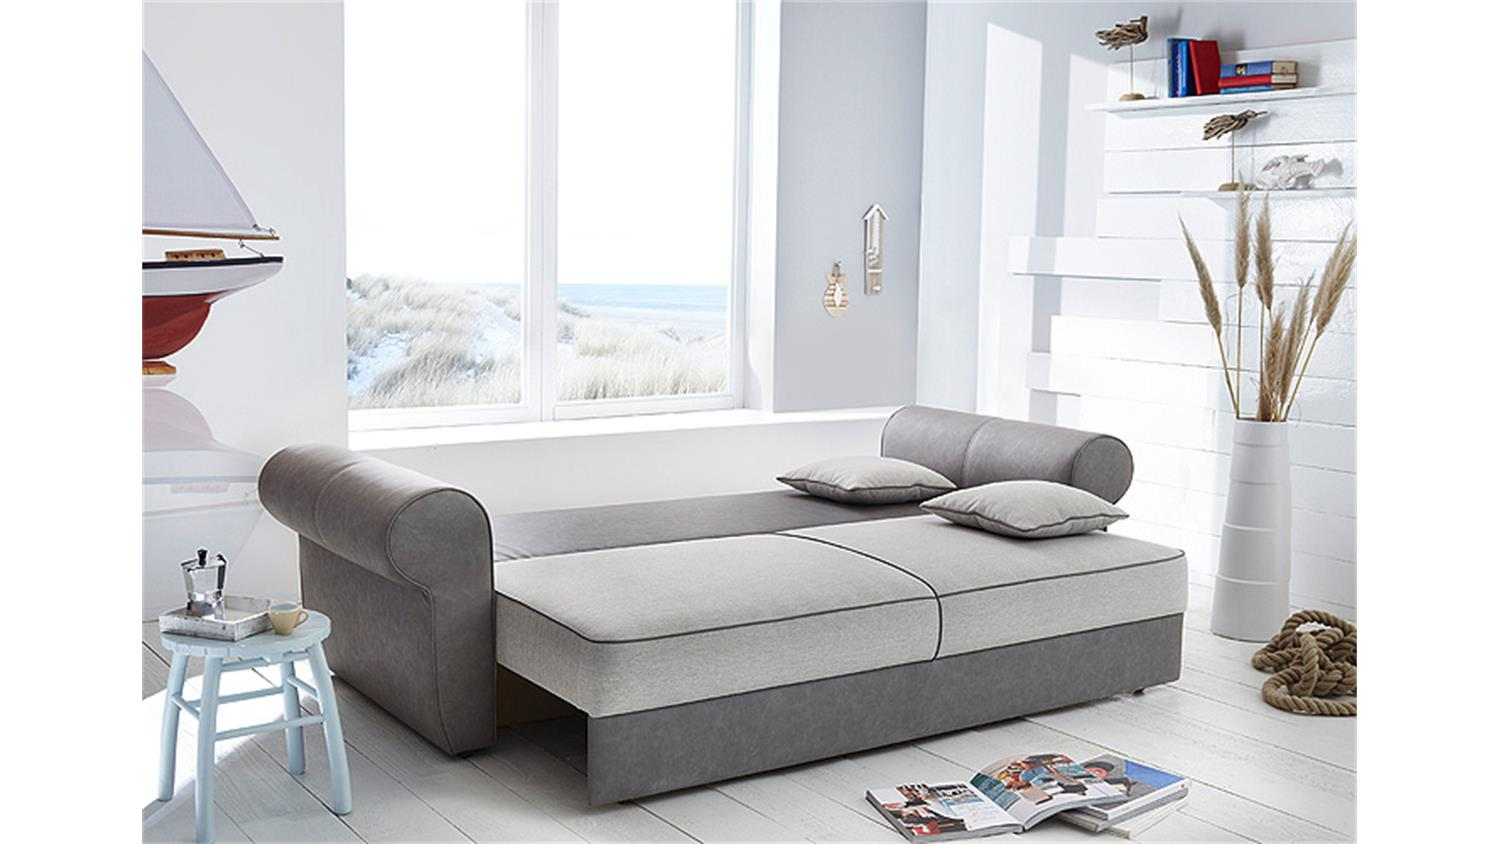 schlafsofa landini sofa dauerschl fer bettkasten grau beige. Black Bedroom Furniture Sets. Home Design Ideas